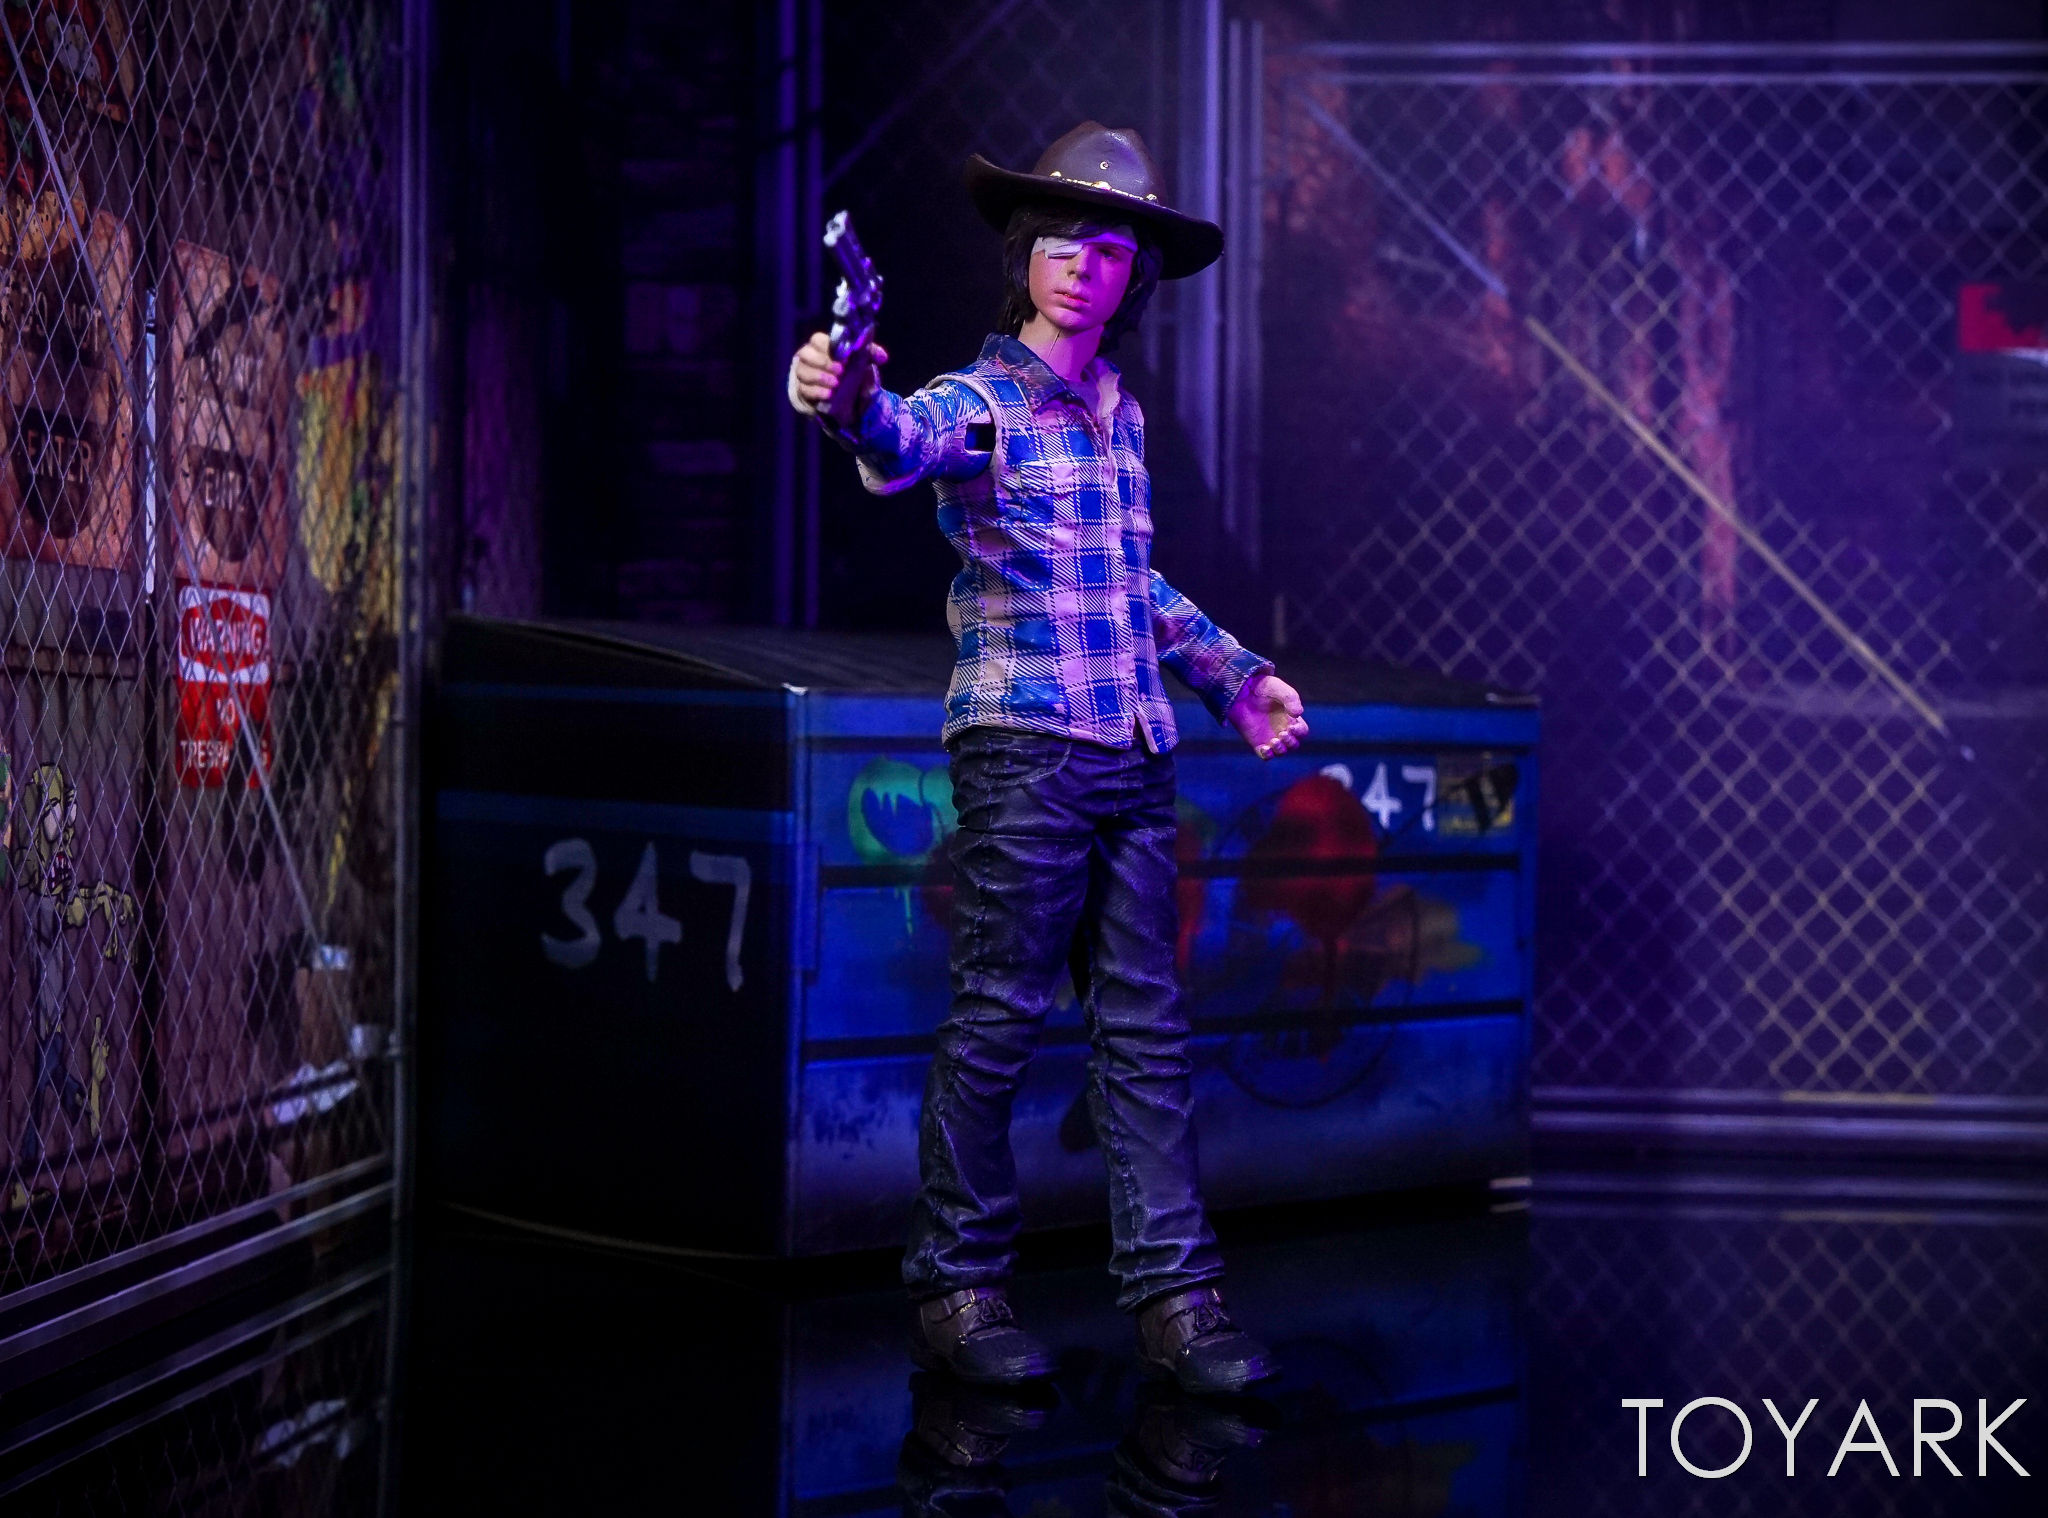 http://news.toyark.com/wp-content/uploads/sites/4/2017/03/McFarlane-Color-Tops-Walking-Dead-Carl-Grimes-036.jpg